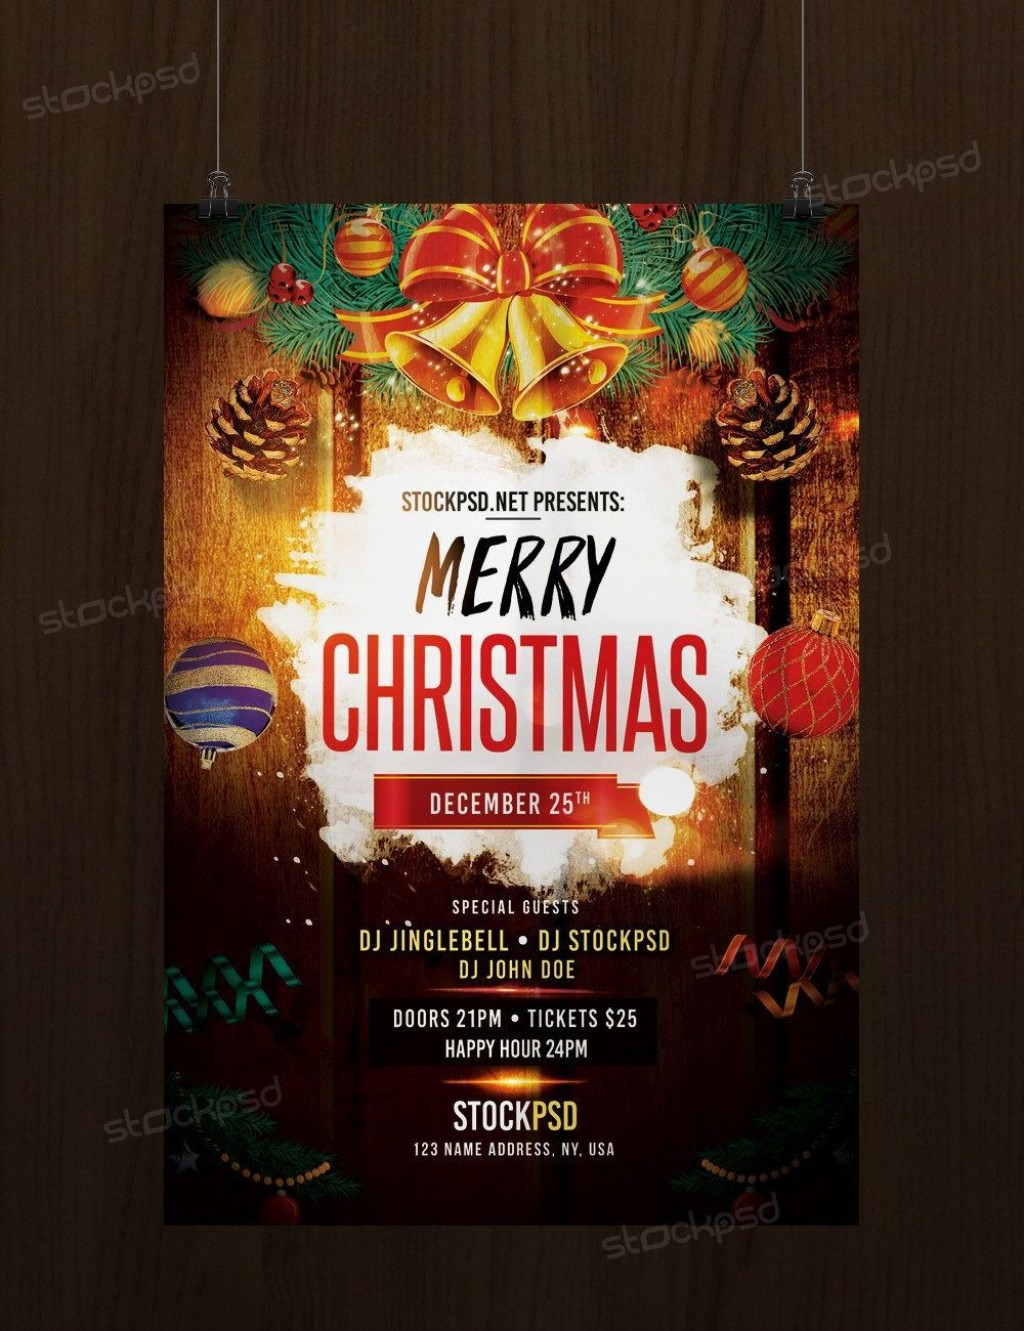 005 Exceptional Christma Flyer Template Free Idea  Party Invitation Psd DownloadLarge